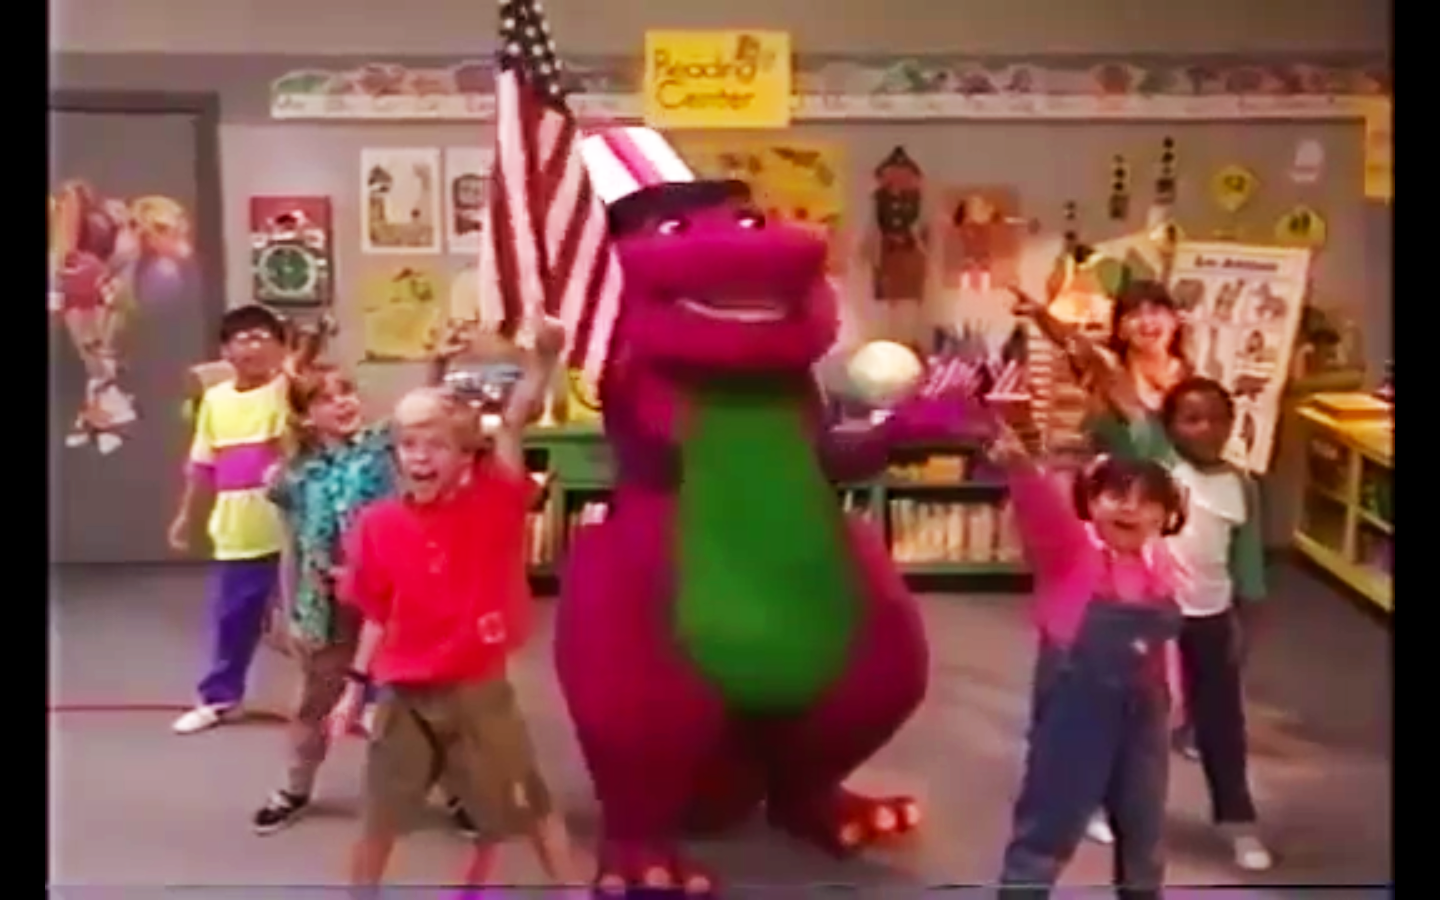 Barney the Dinosaur, wearing a patriotic hat and waving an American flag, leads a group of children in a song and dance.